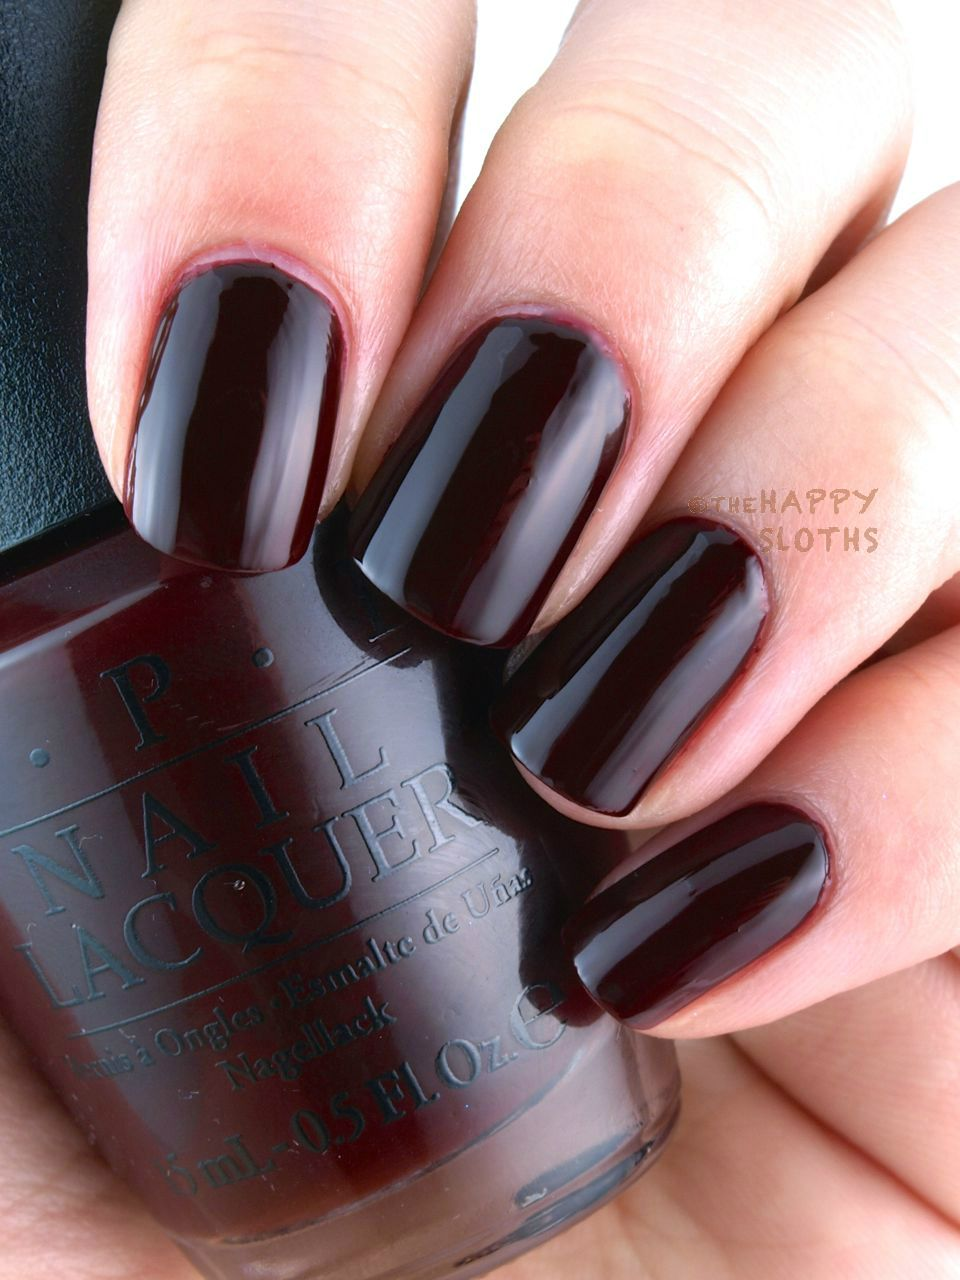 Opi Starlight Collection For Holiday 2015 Review And Swatches Womens Nails Hair And Nails Nail Polish